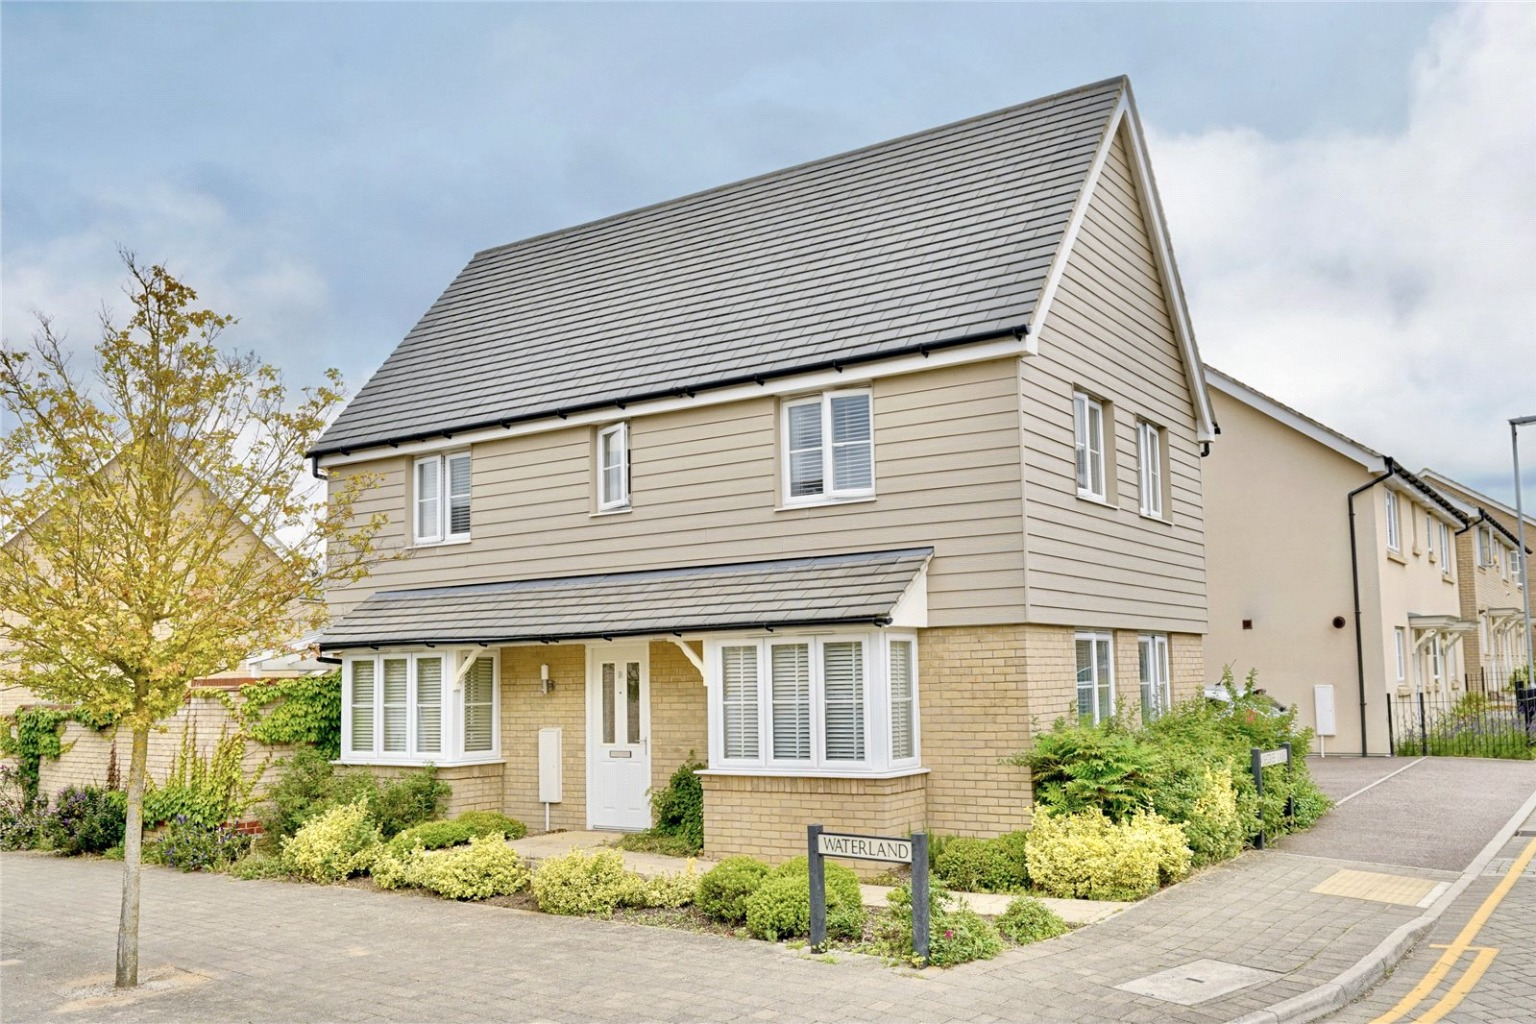 3 bed detached house for sale in Waterland, St. Neots - Property Image 1